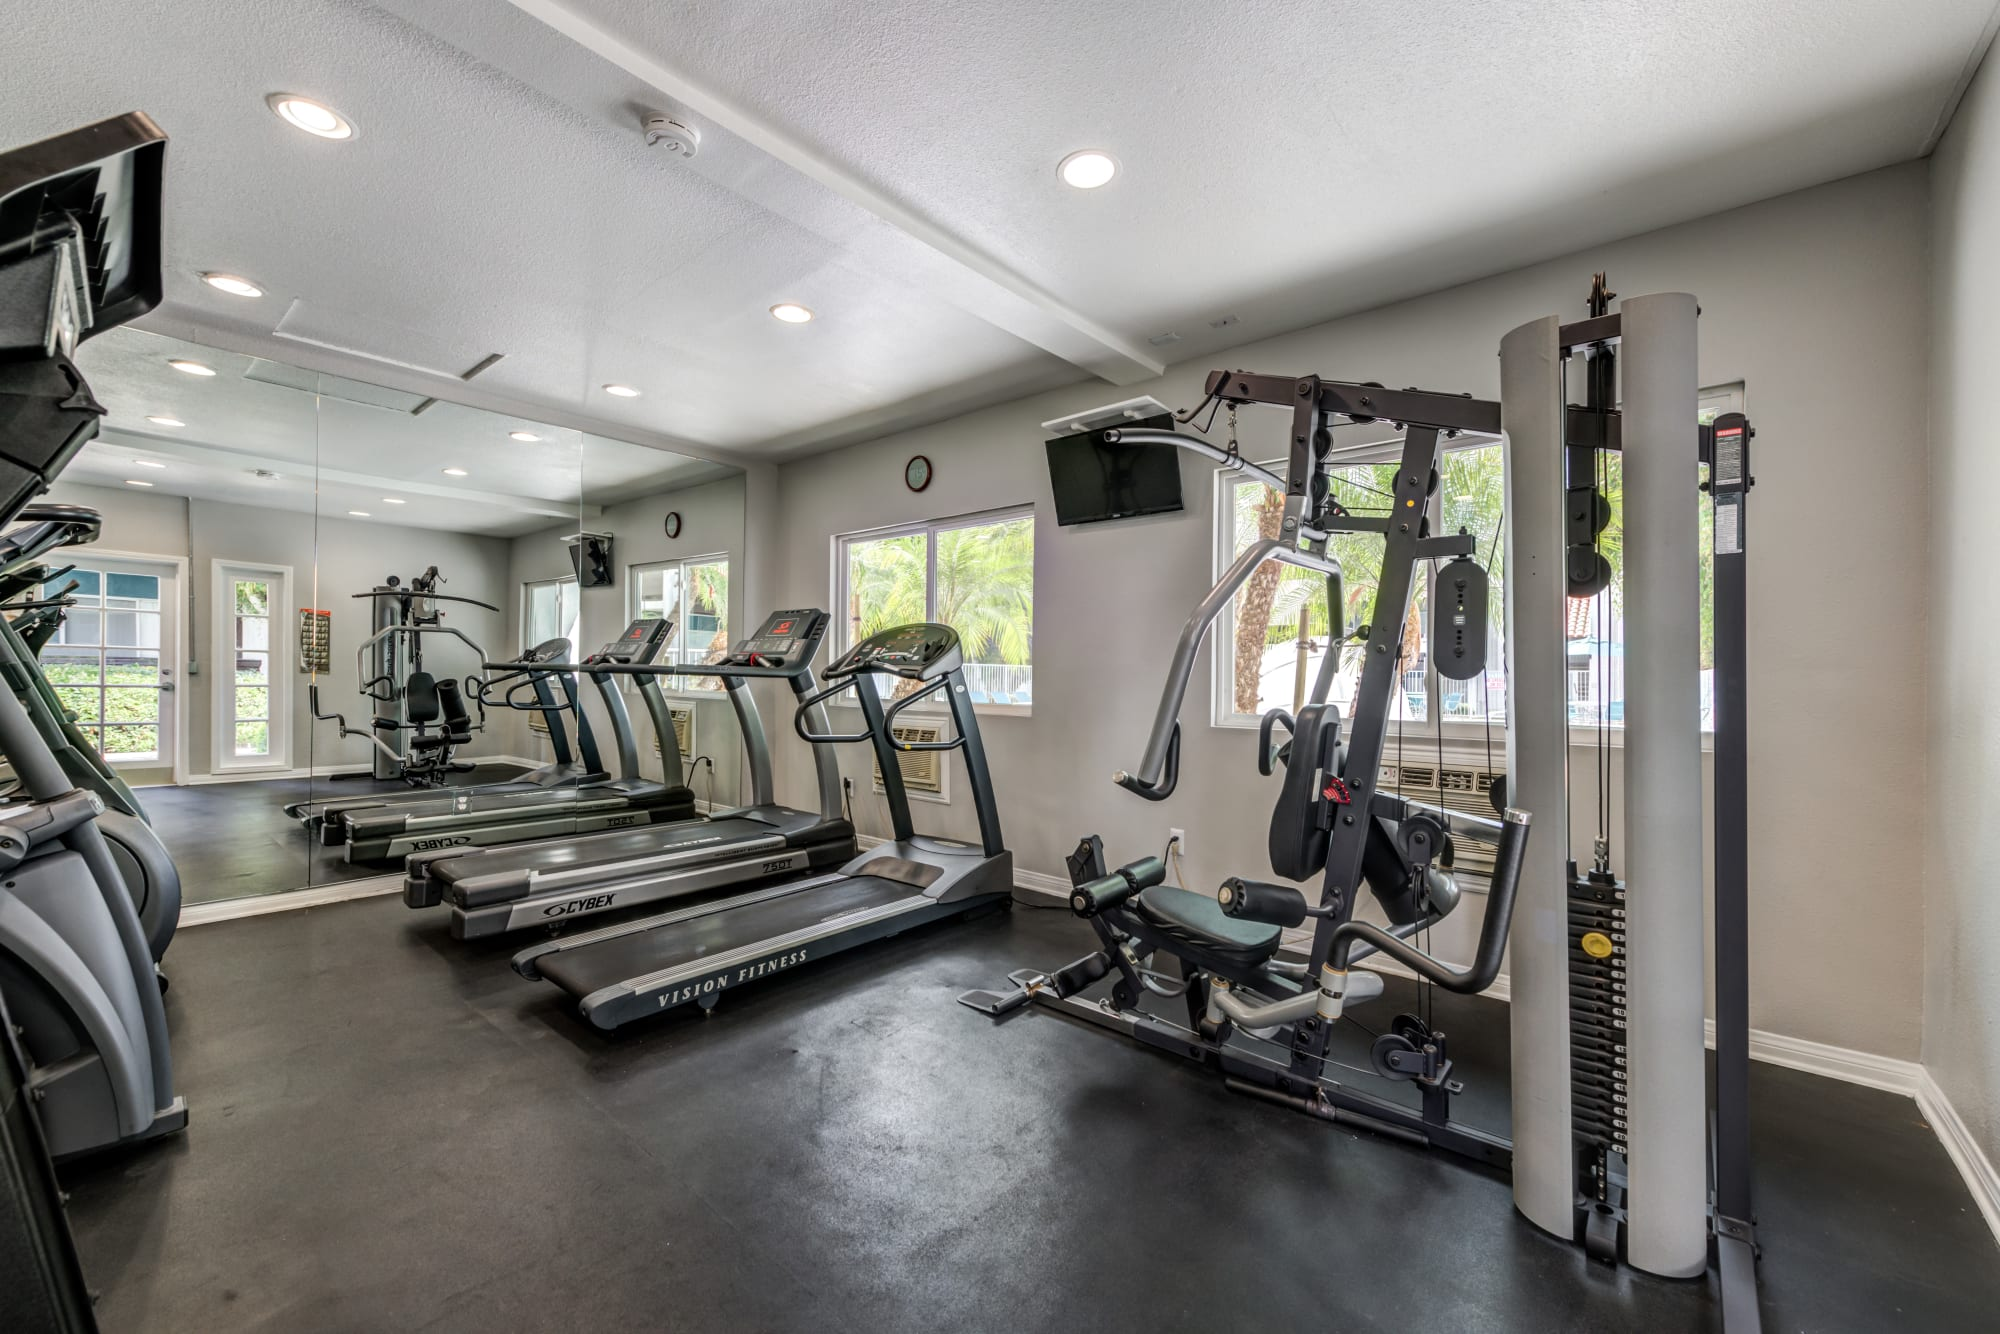 The fitness center at Kendallwood Apartments in Whittier, California